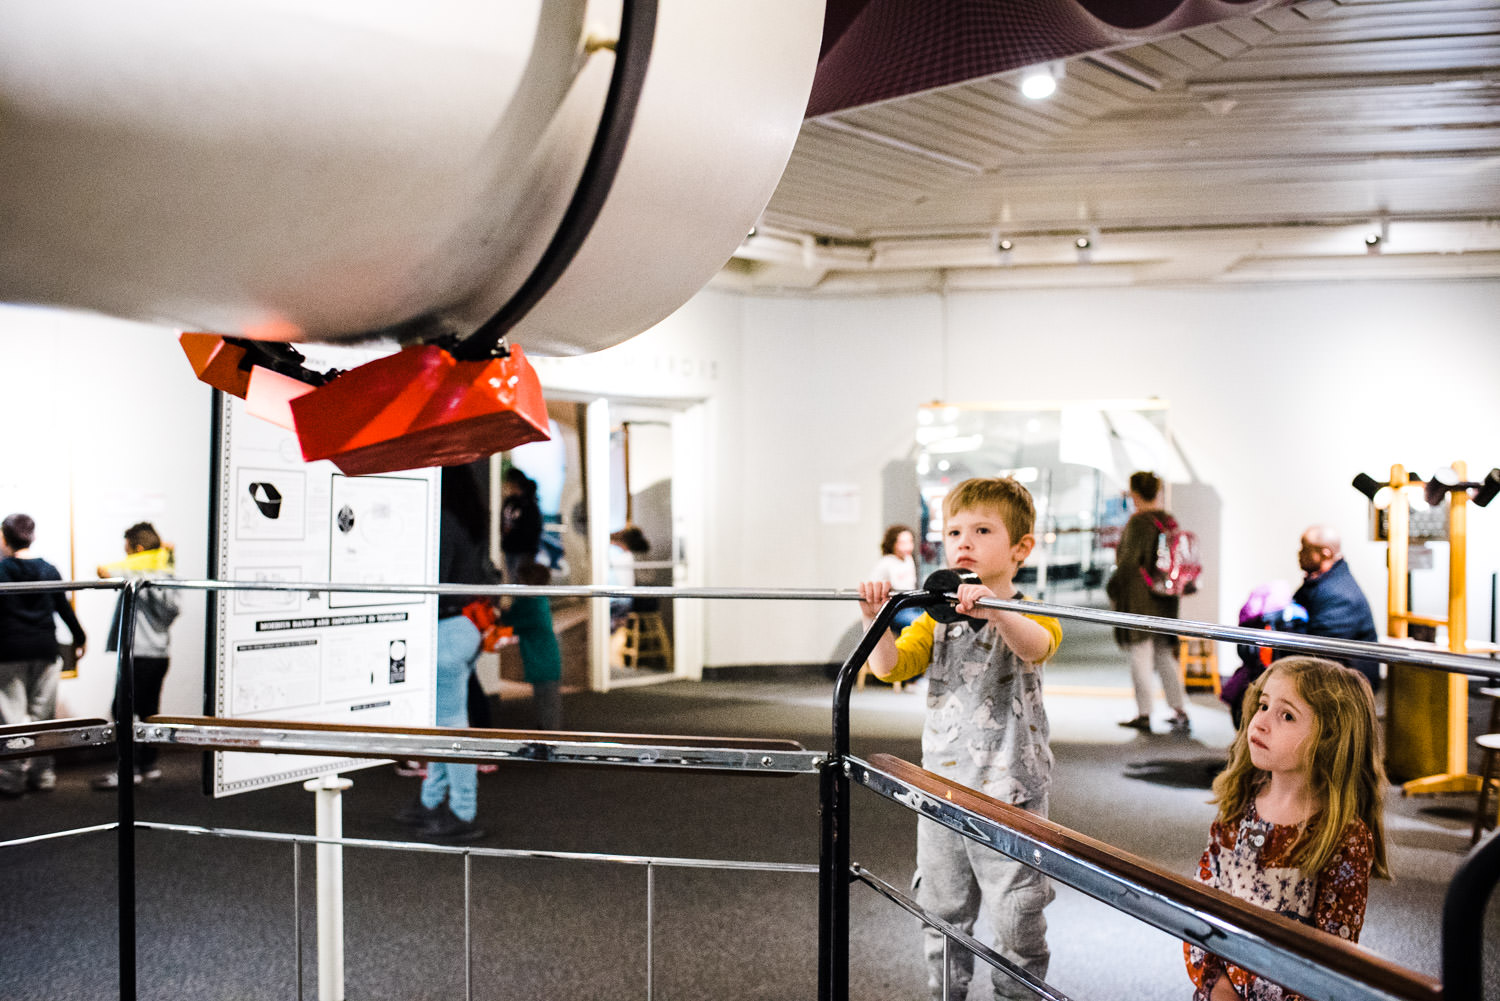 Two children look at an exhibit at the Hall of Science.